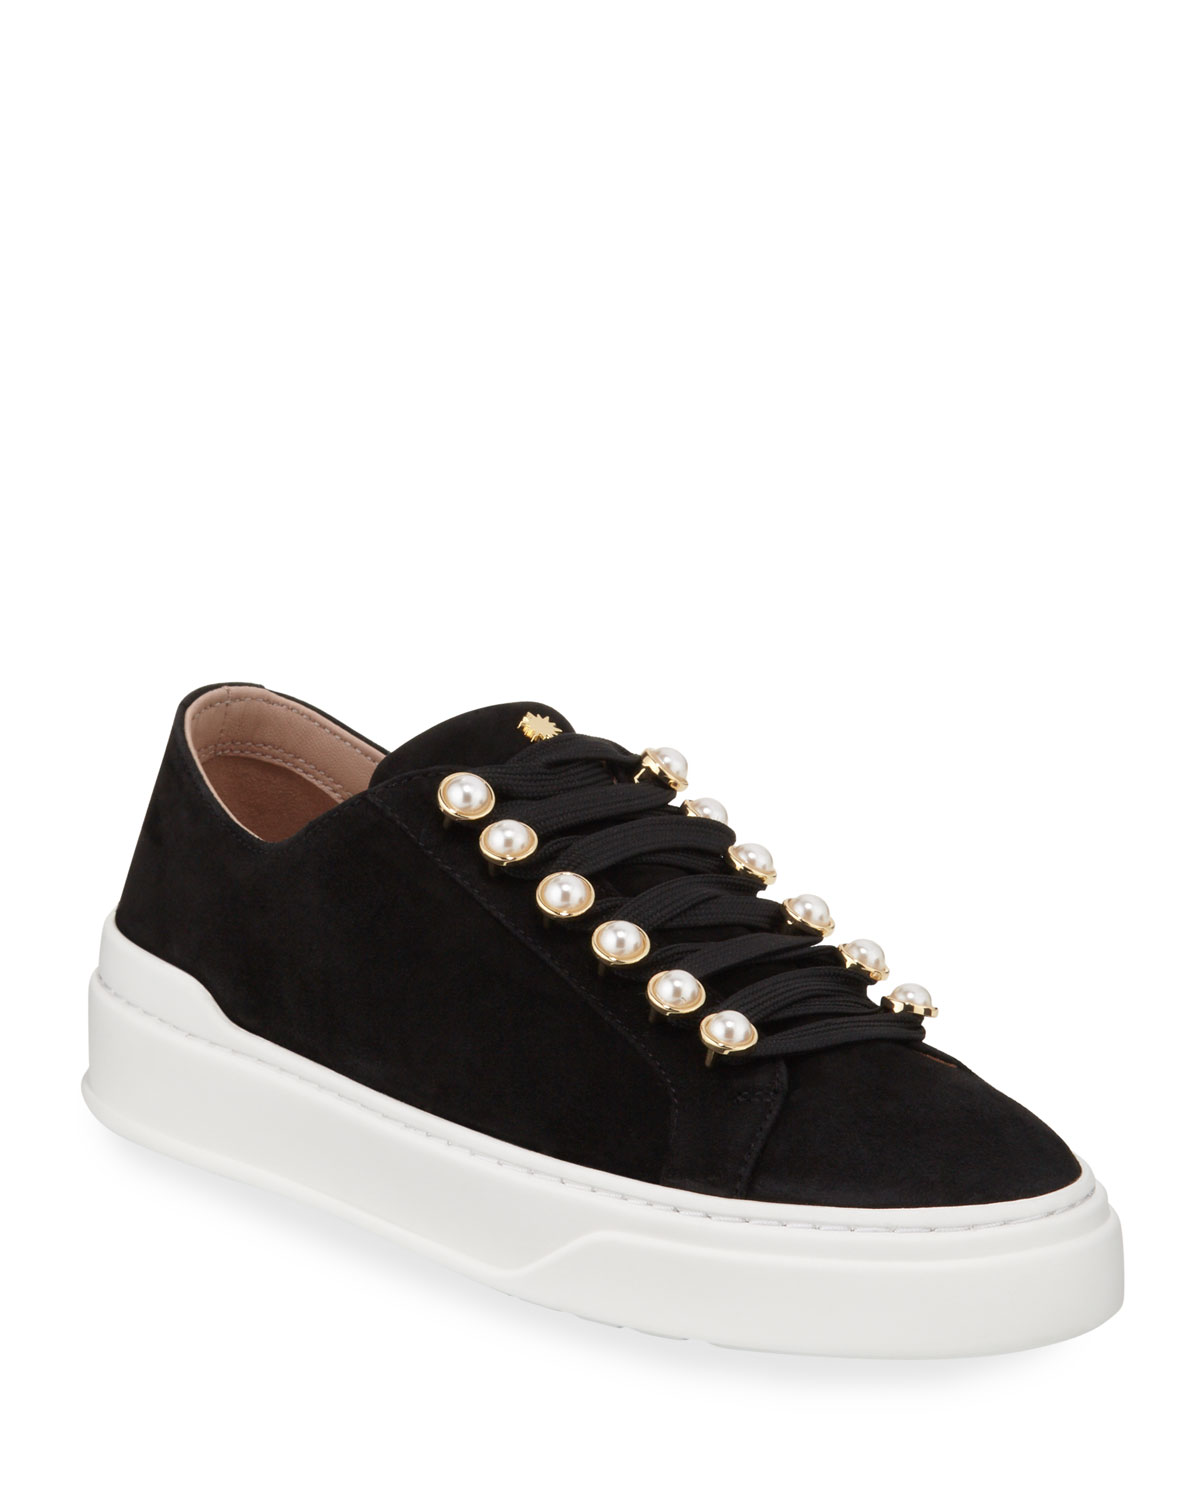 Excelsa Pearly-Detail Suede Low-Top Sneakers